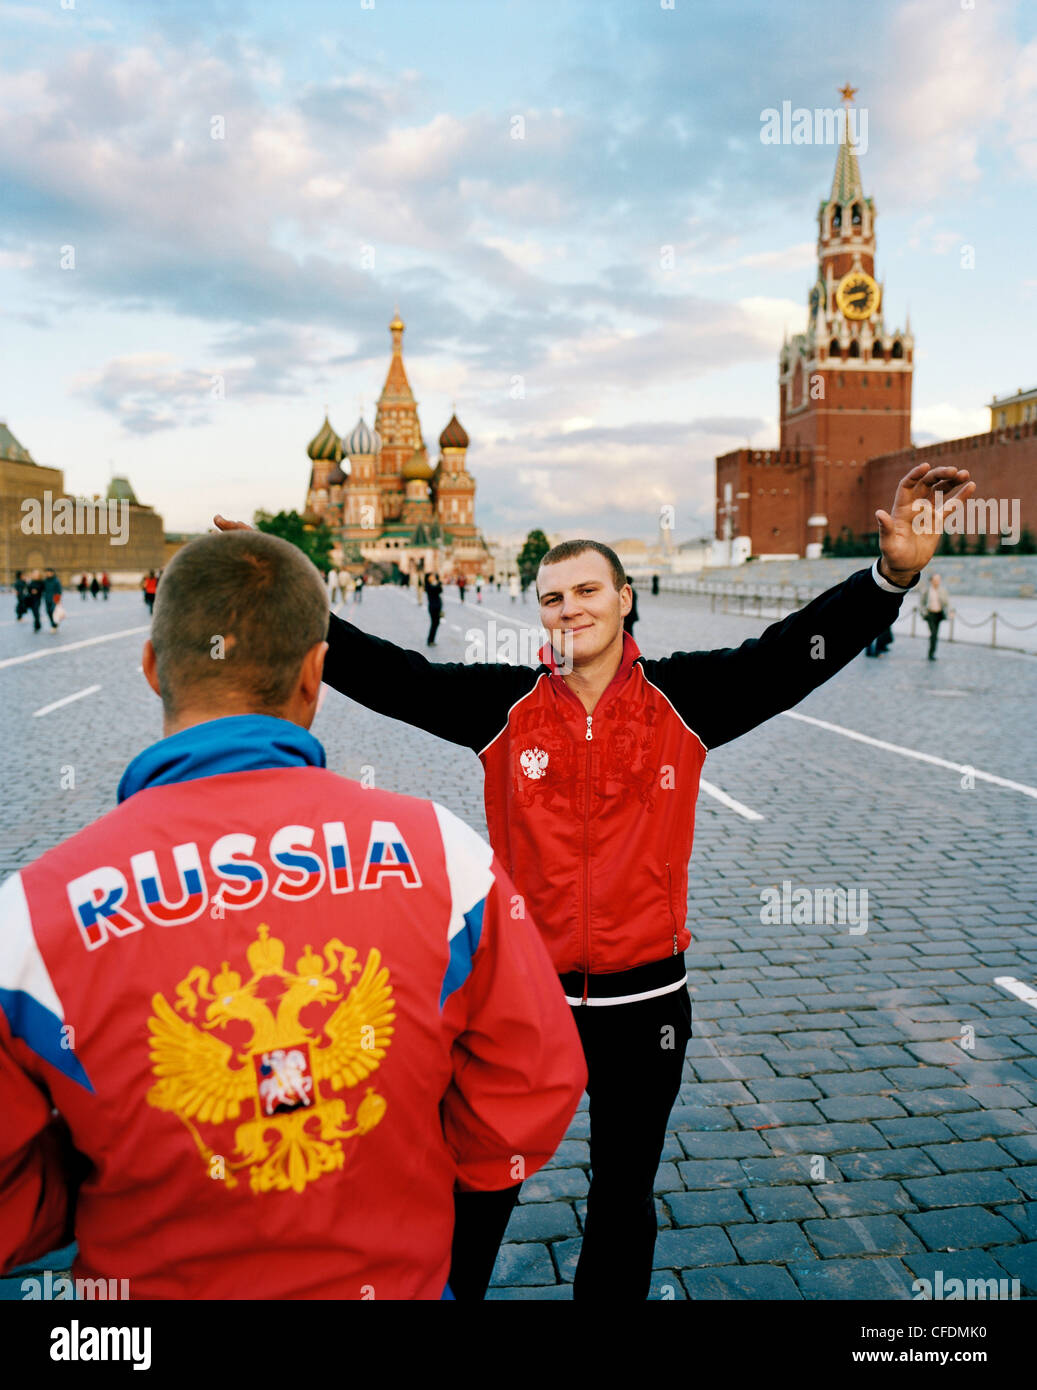 Young russians in front of the St. Basil's Cathedral on Red Square, Moscow, Russia, Europe - Stock Image